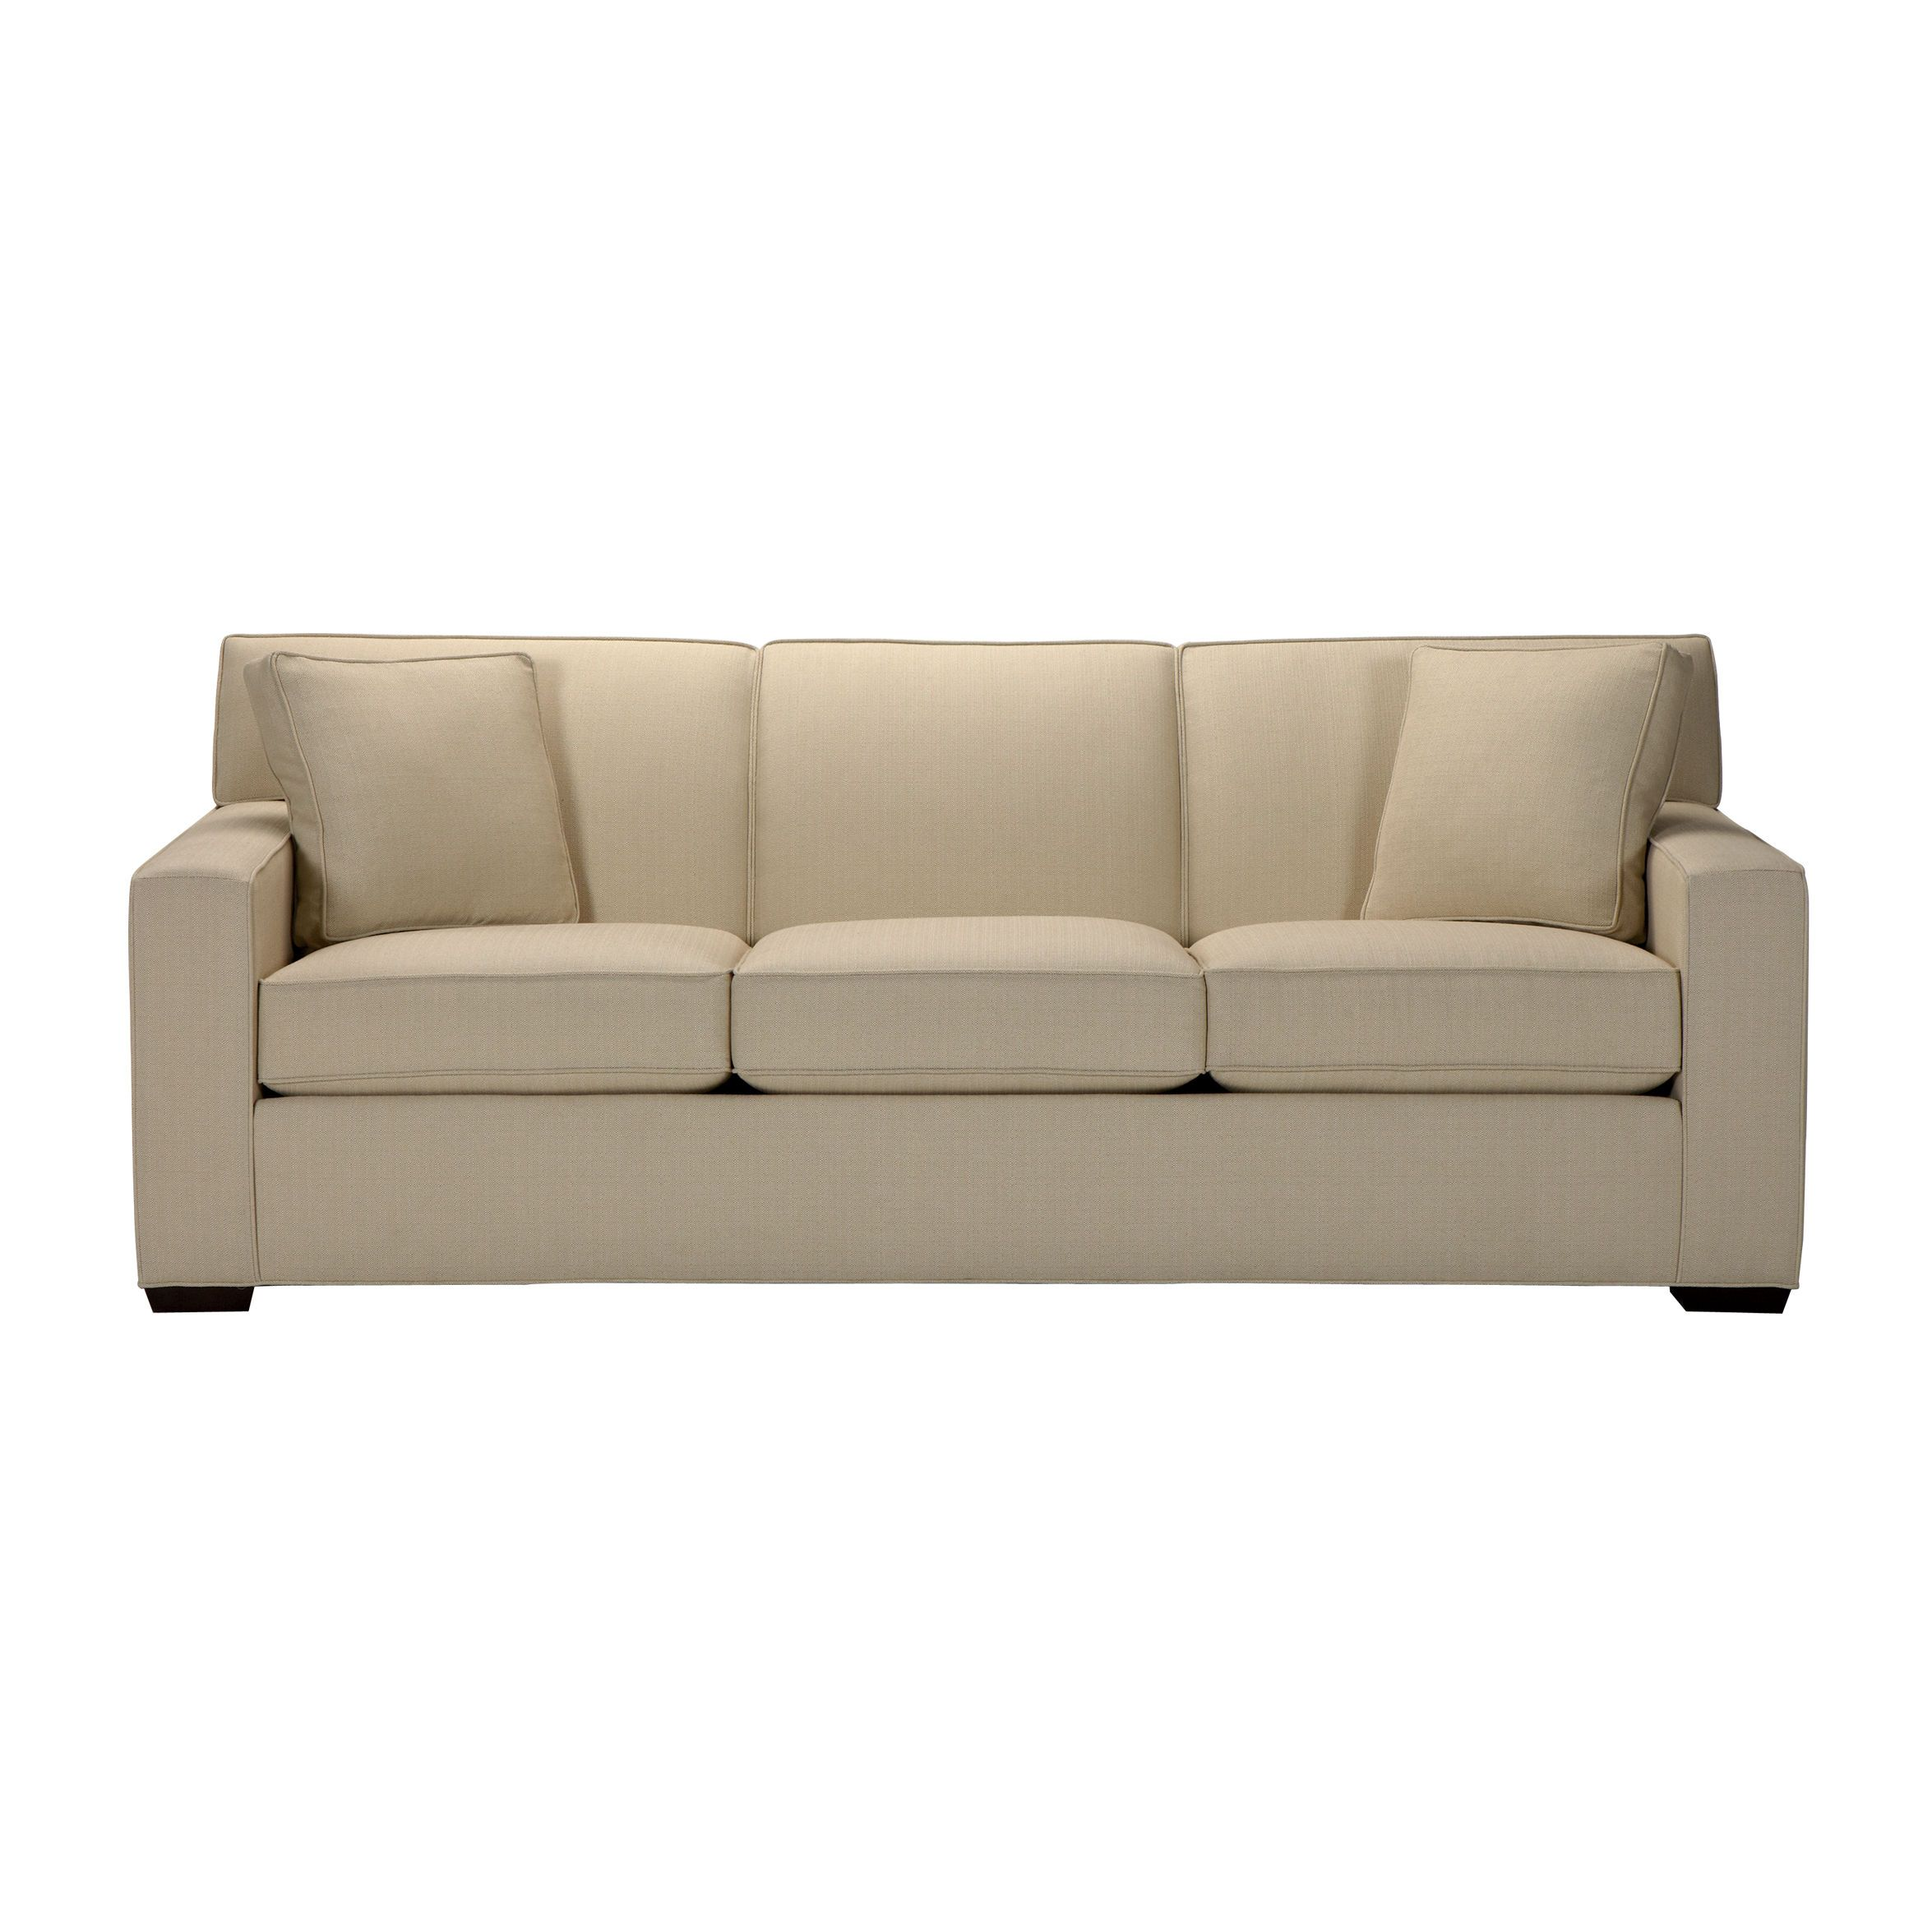 Astonishing Tight Back Sofa Ethan Allen Kendall Sofa The Perfect Creativecarmelina Interior Chair Design Creativecarmelinacom